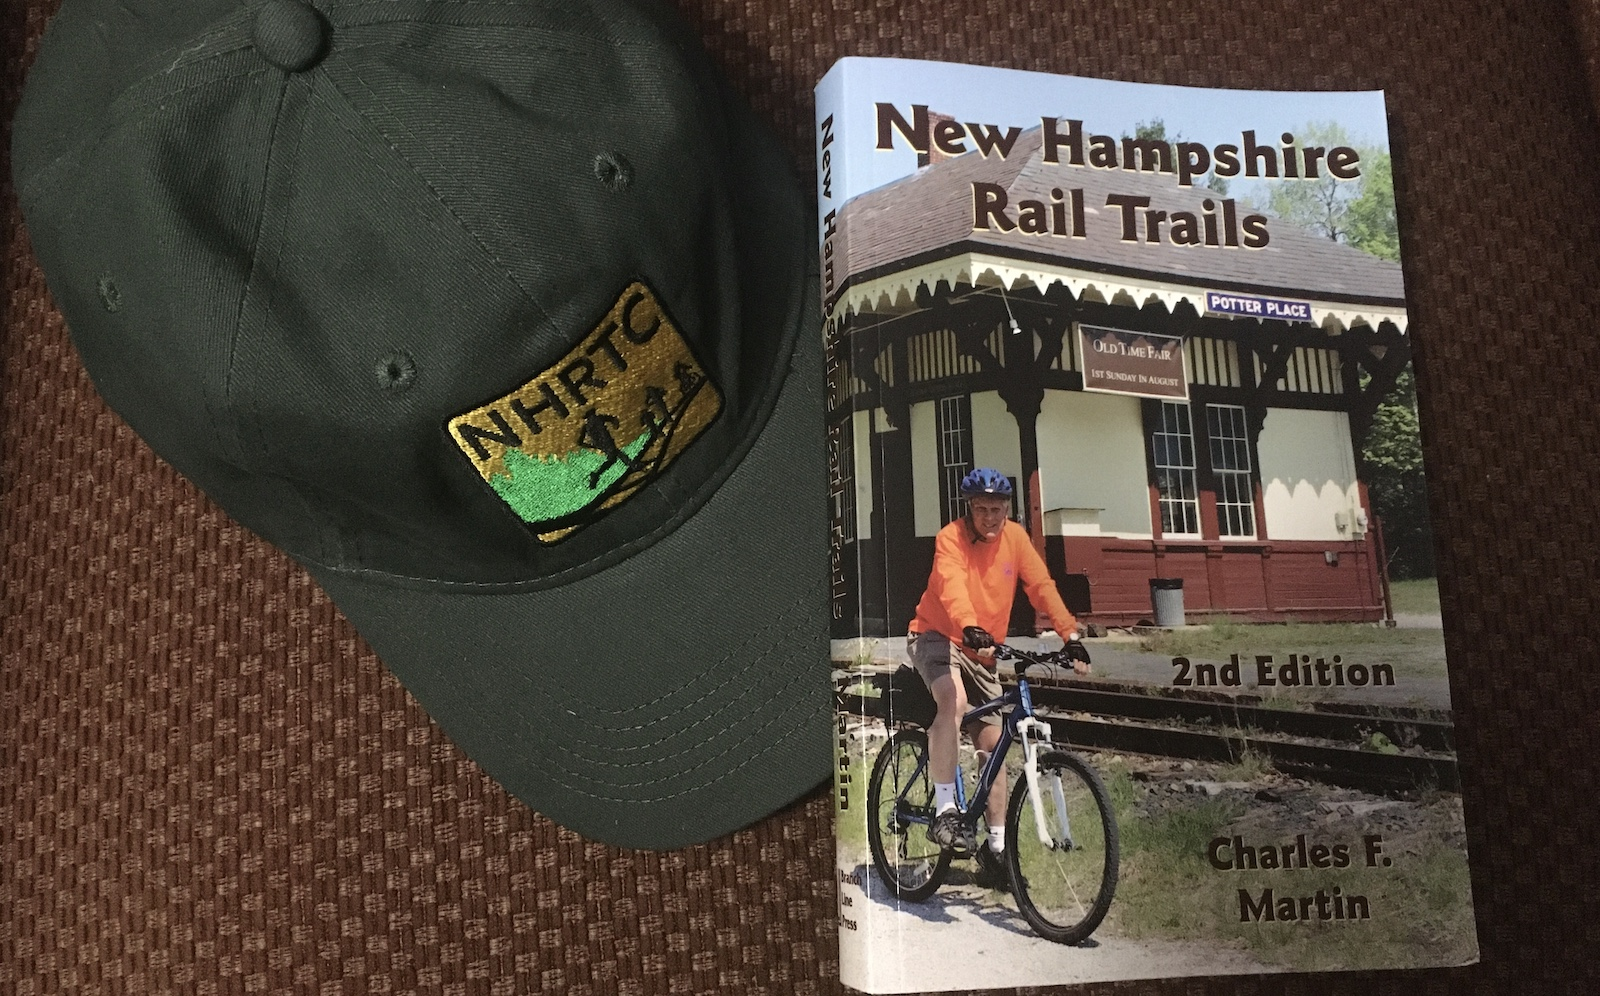 New Hampshire Rail Trails Coalition hat and book